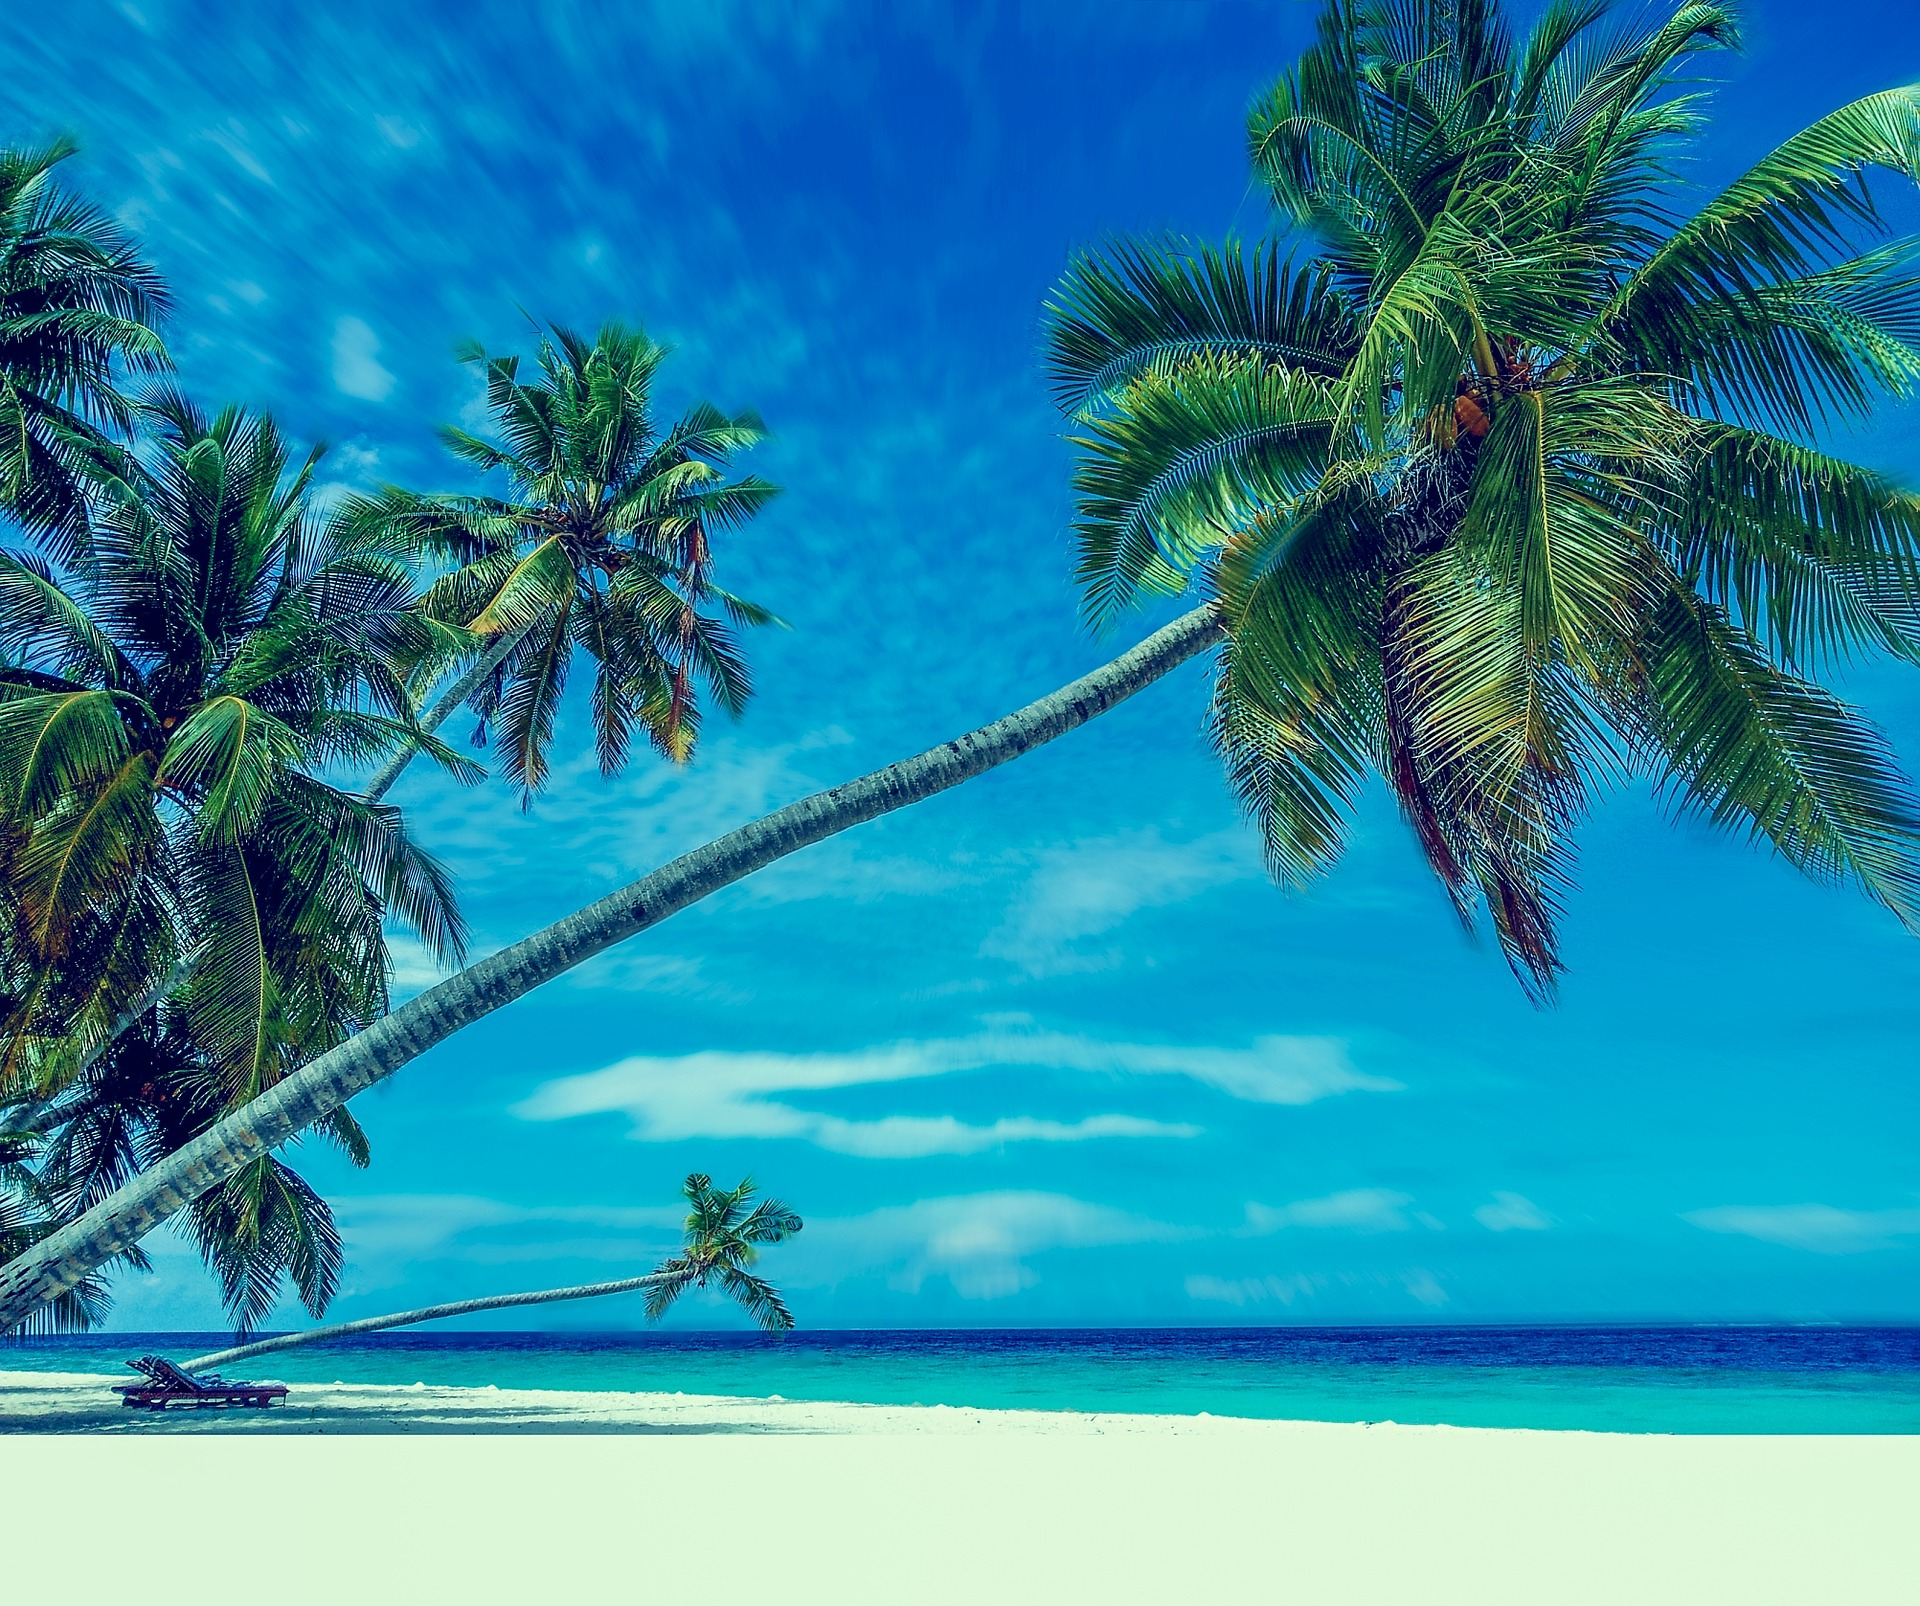 world's 50 best beaches palm trees fantasy beach